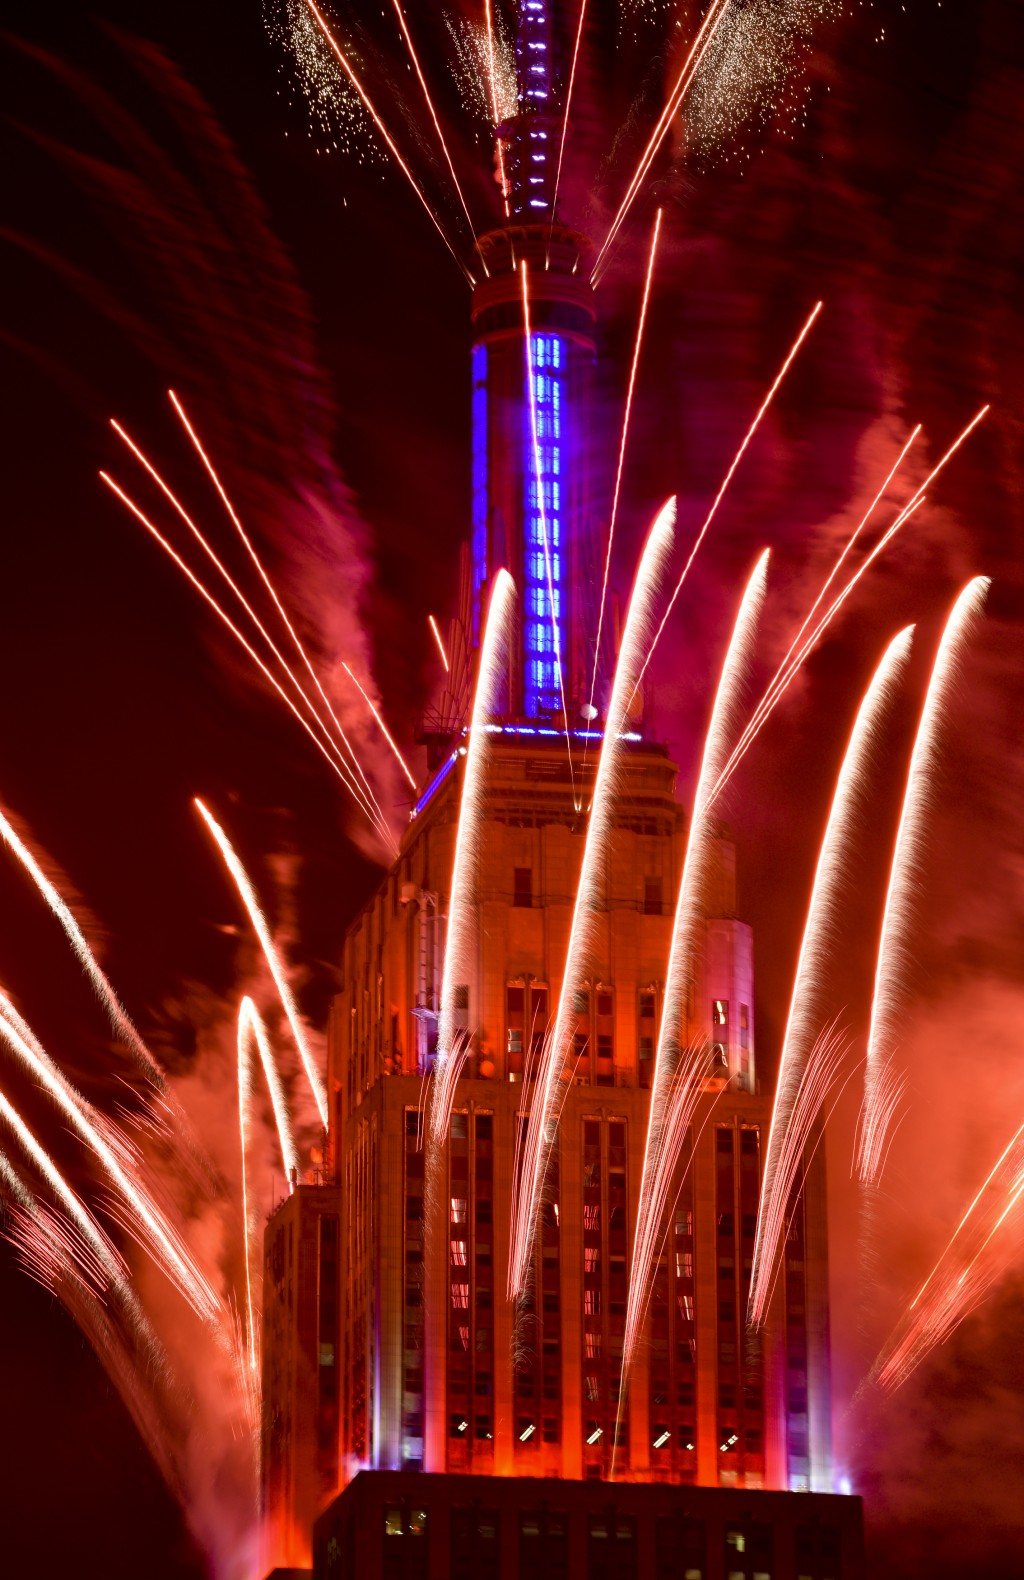 View of the Macy's 4th of July fireworks display launched from the Empire State Building, late Sunday, July 4, 2021, in New York. (Photo by Evan Agost...